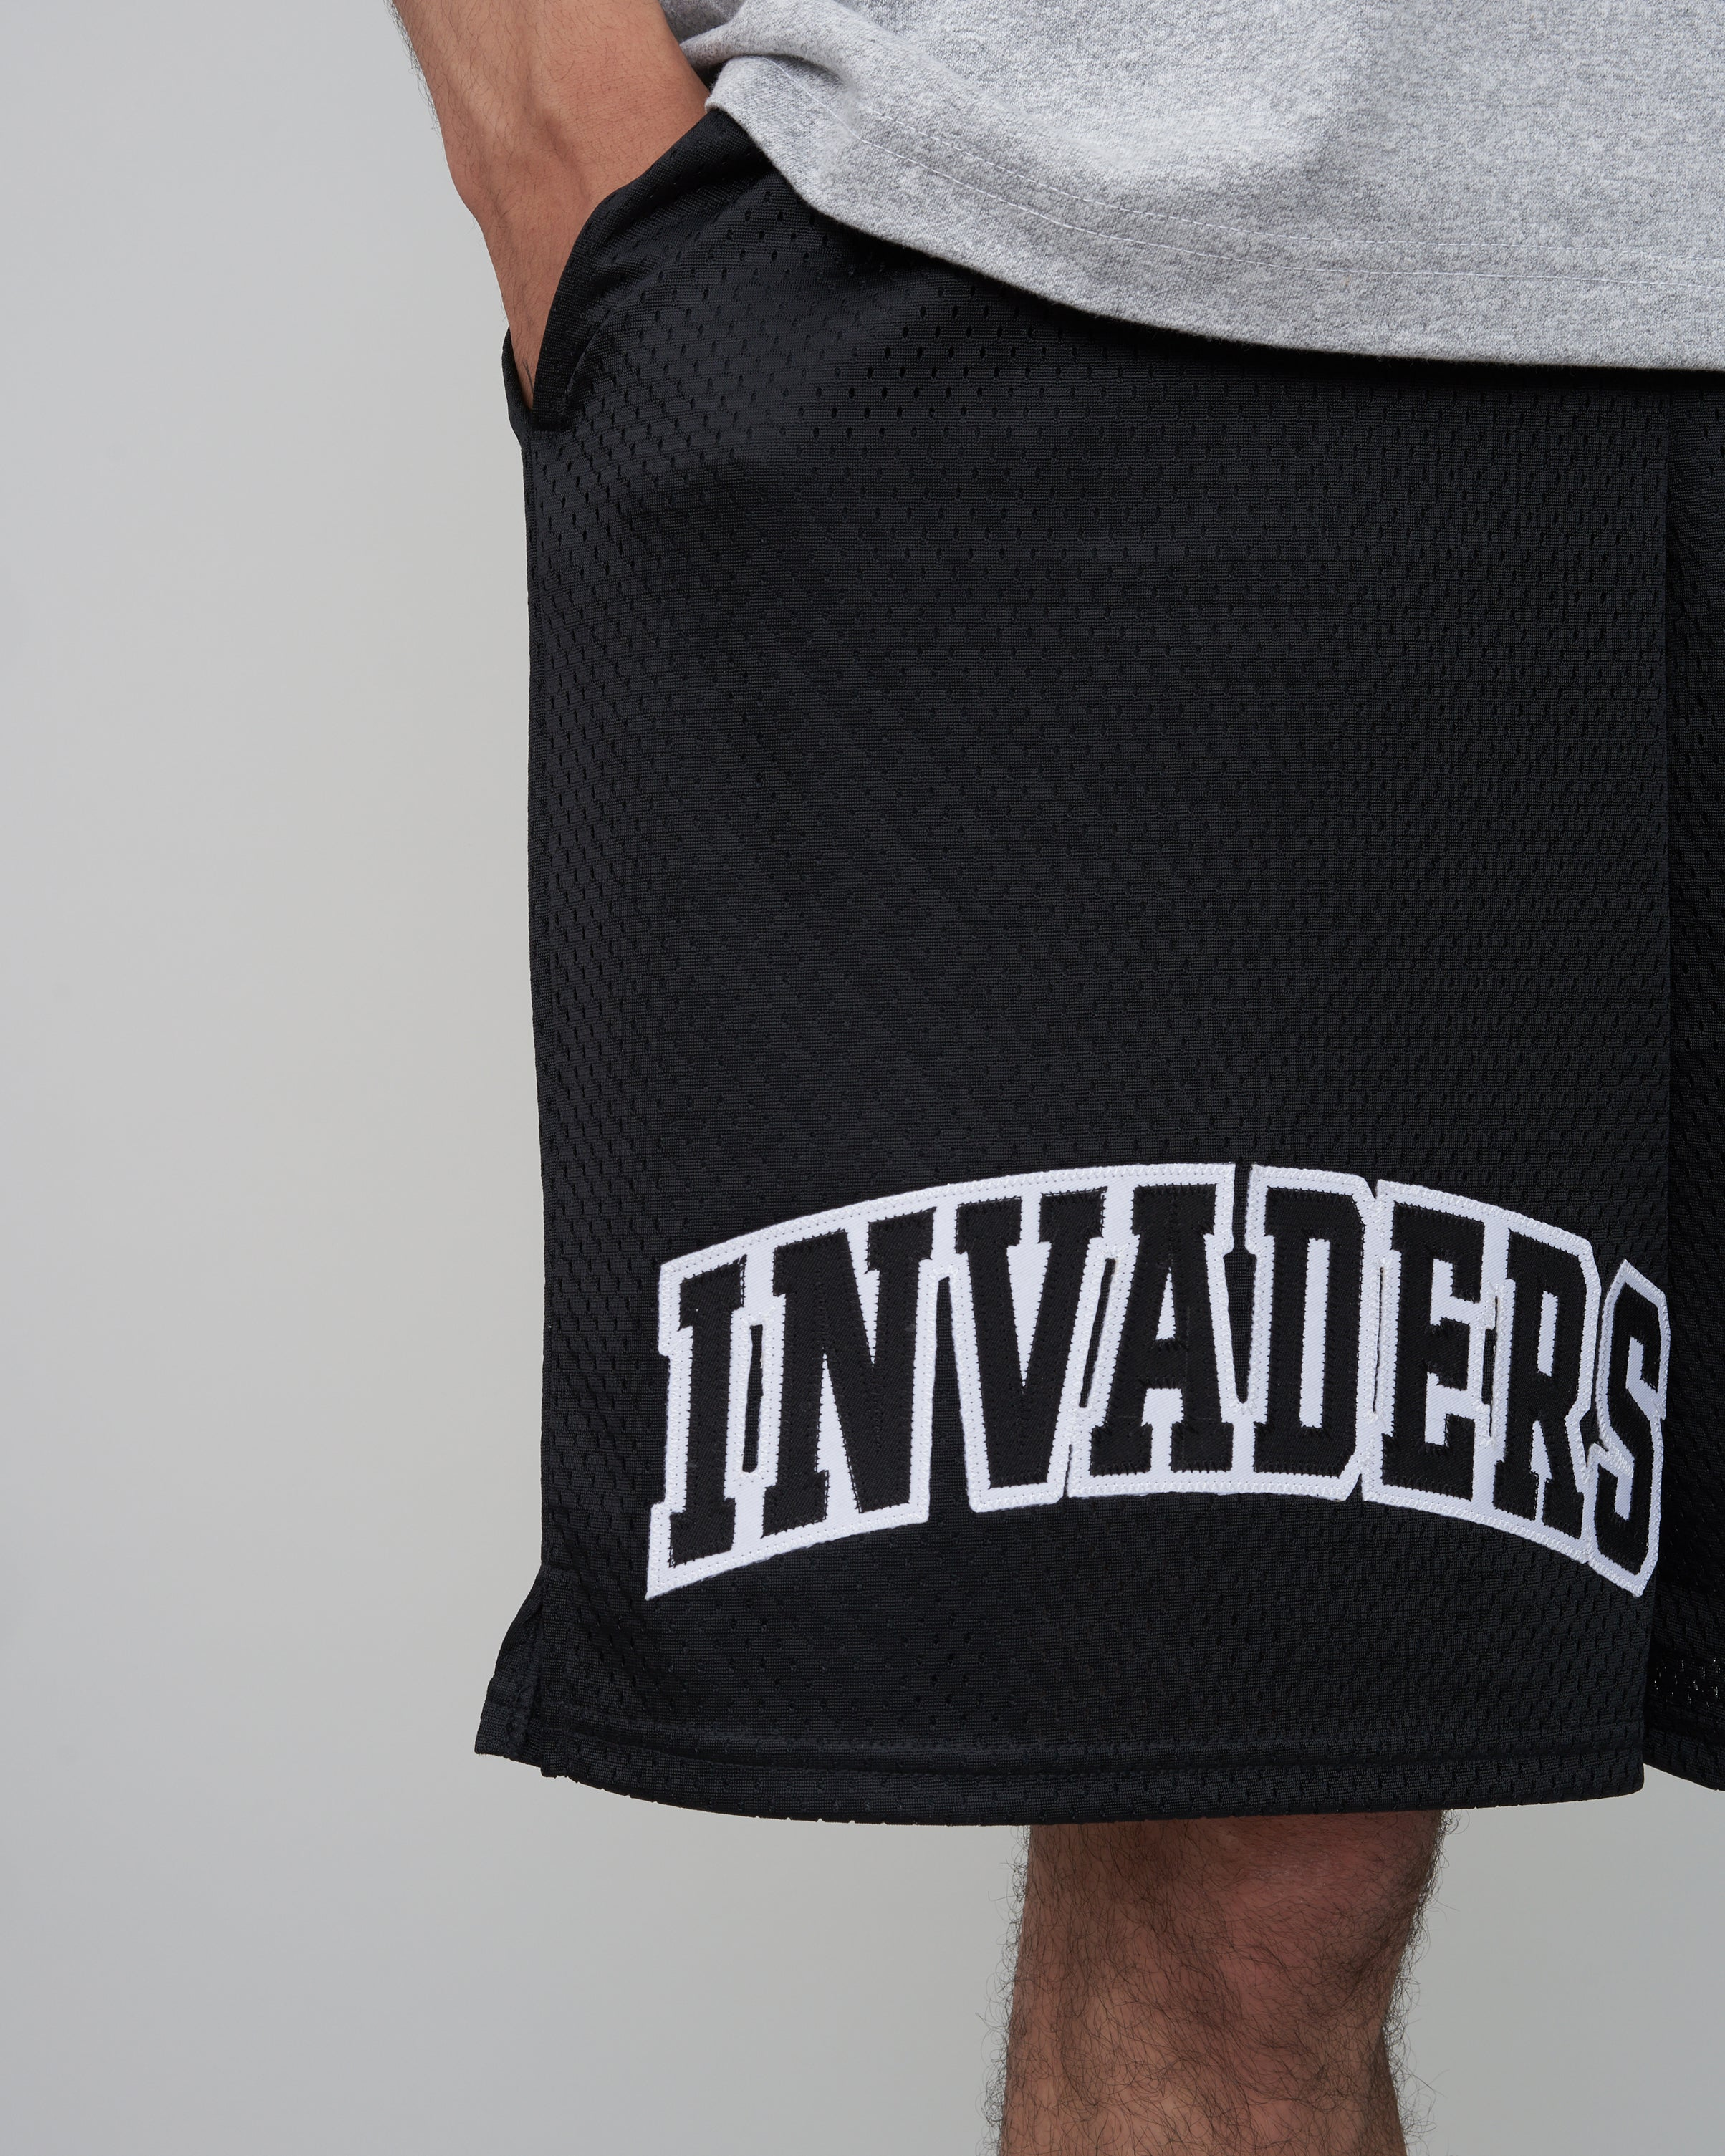 Invaders Arc Mesh Shorts GRMS Champion